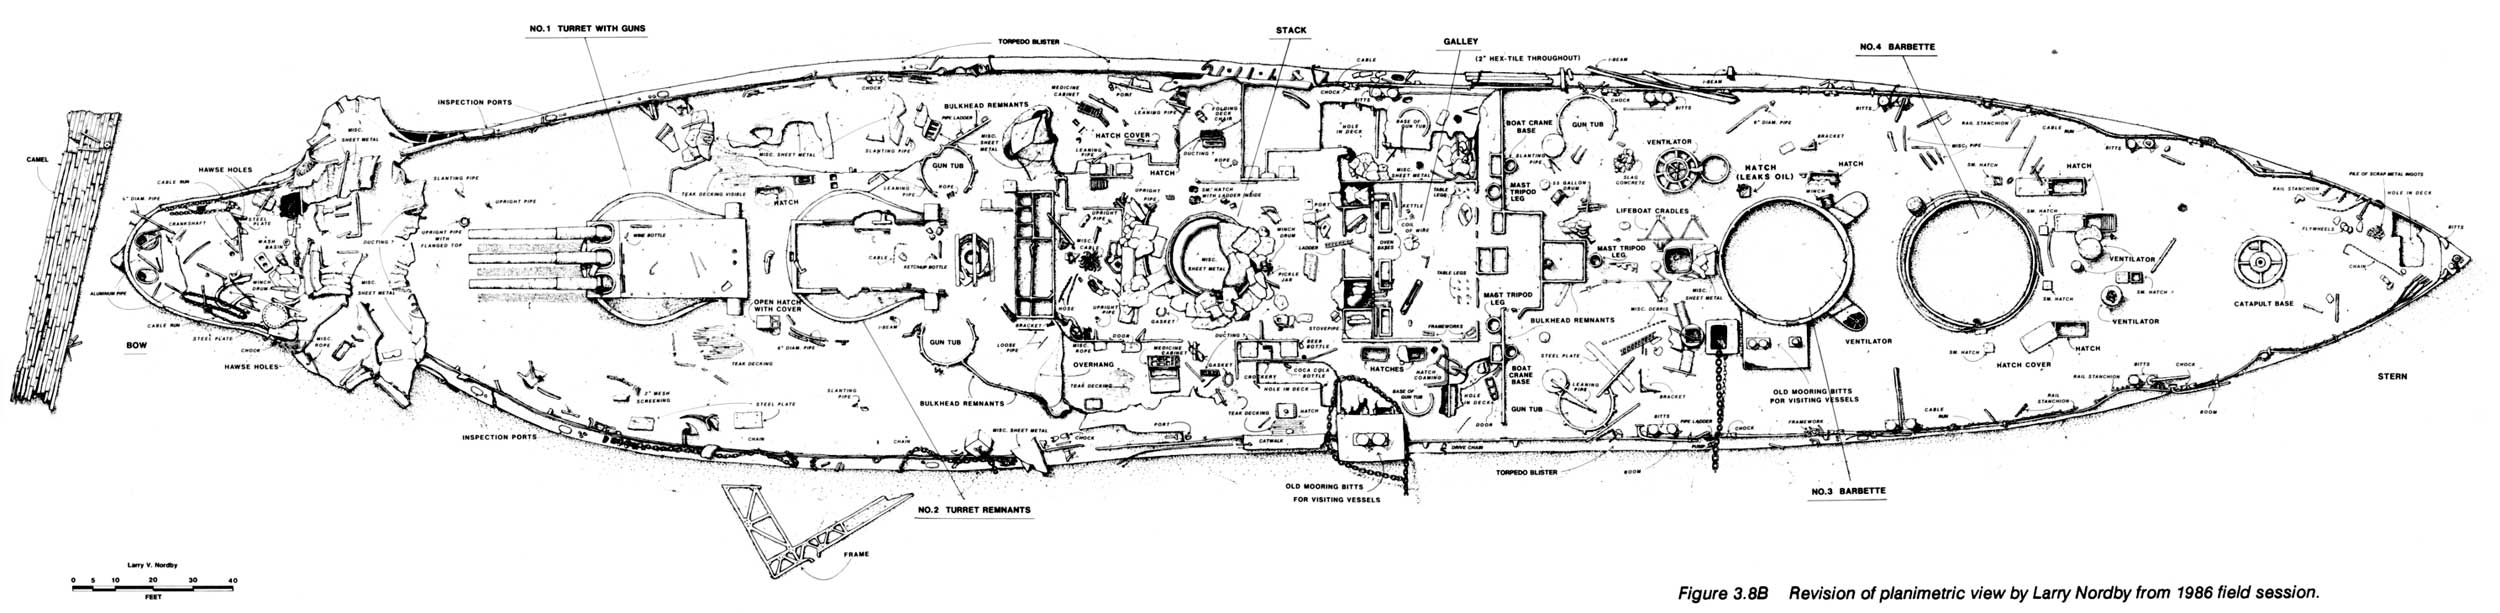 Uss Arizona Memorial Submerged Cultural Resources Study Table Of 2002 Ford Ranger 2 3l Engine Diagram 38